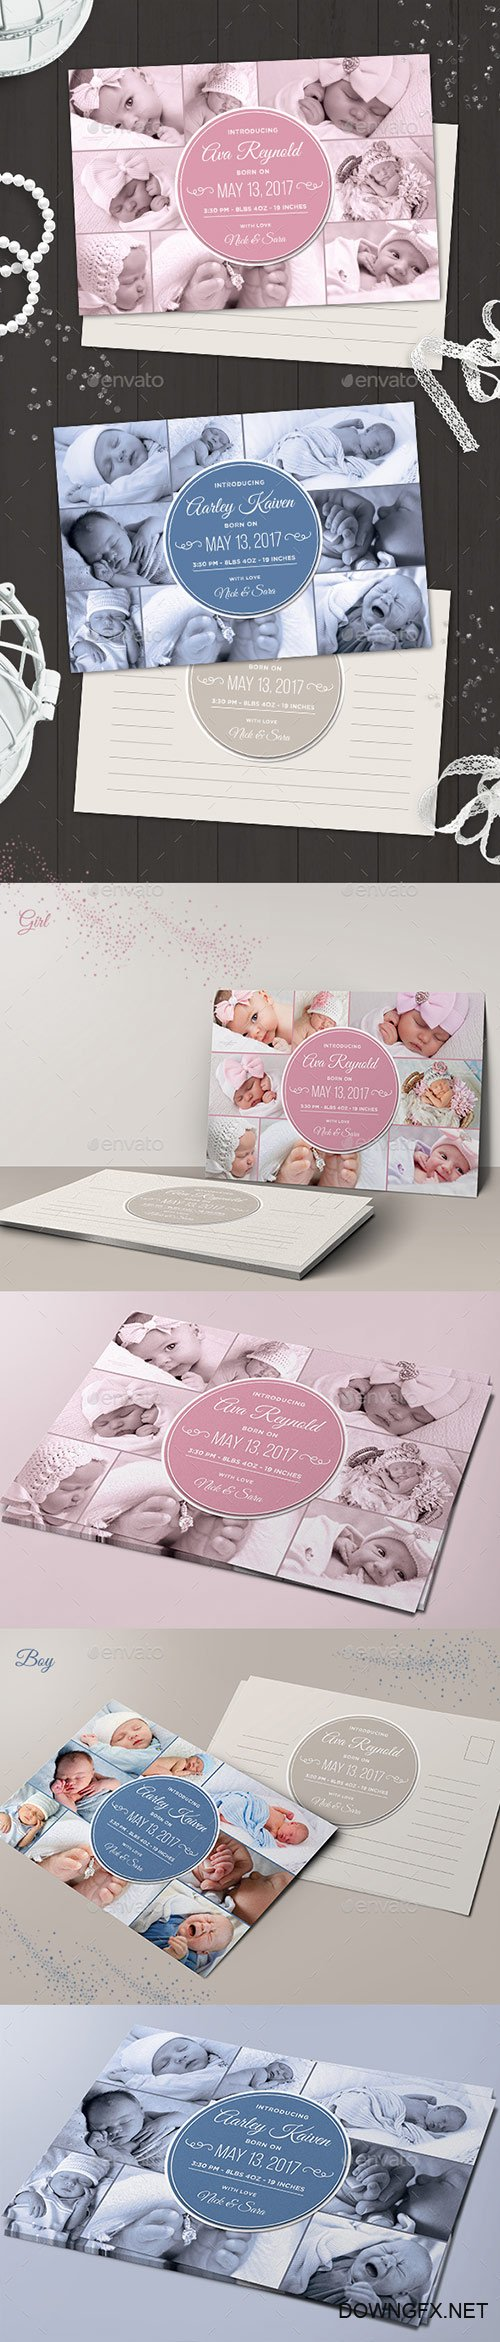 Graphicriver - Baby Announcement ( Boy & Girl ) 18624750